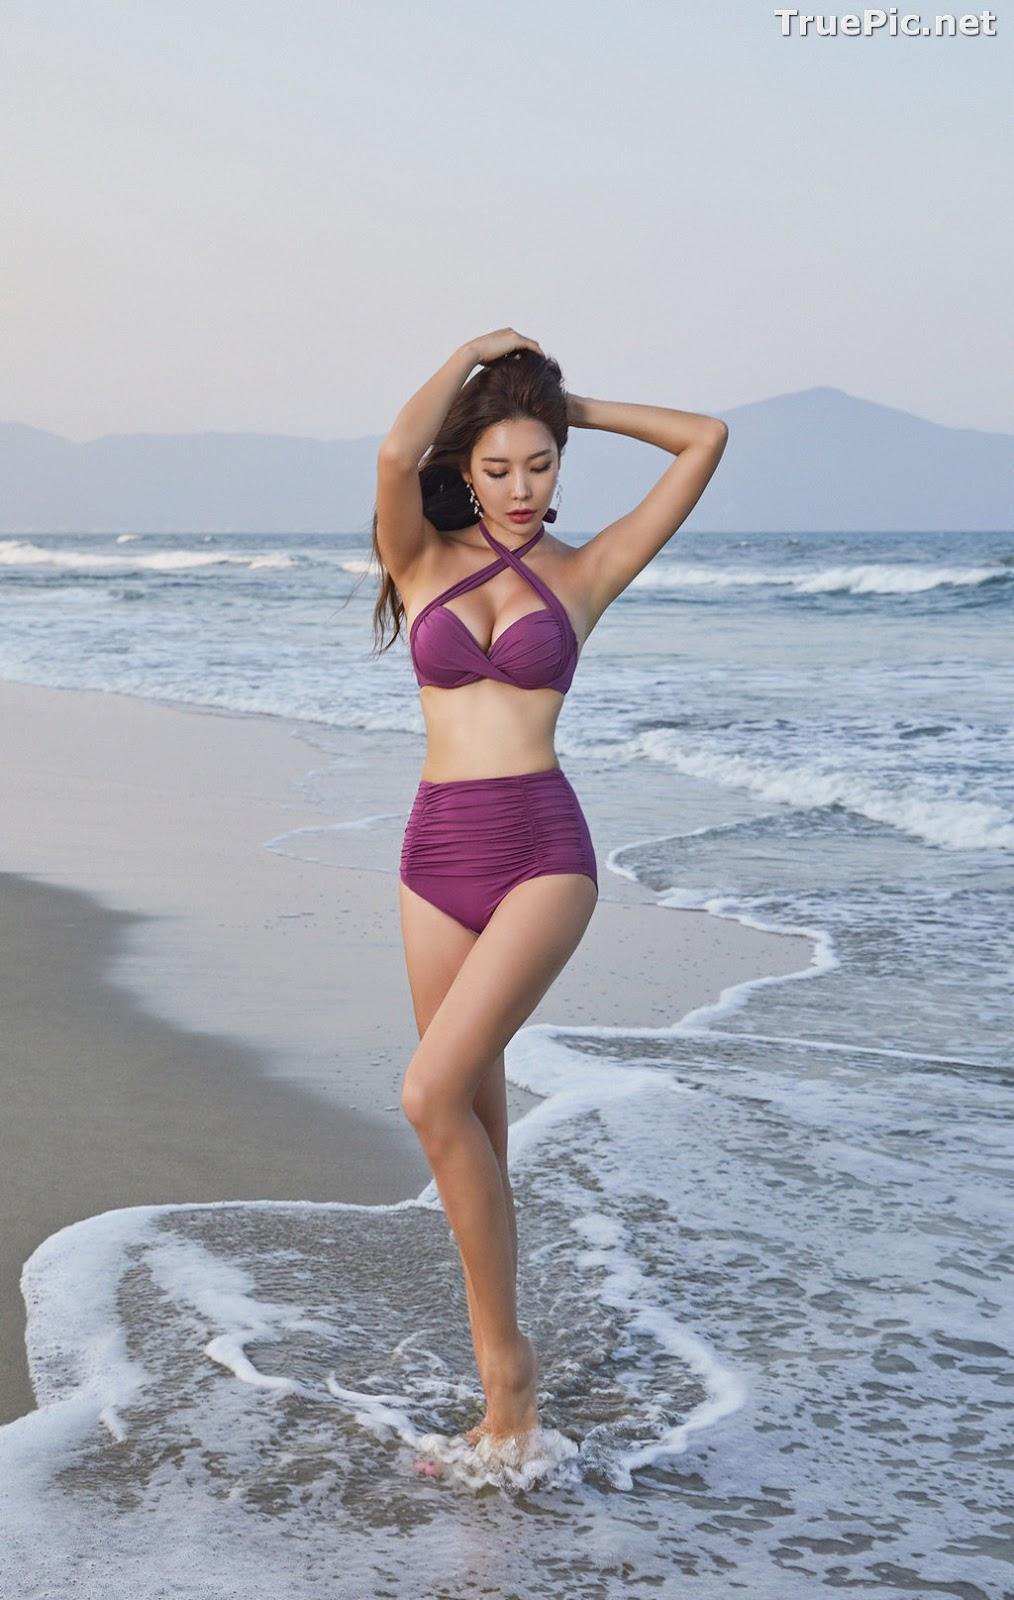 Image Park Da Hyun - Korean Fashion Model - RoseMellow Purple Bikini - TruePic.net - Picture-9